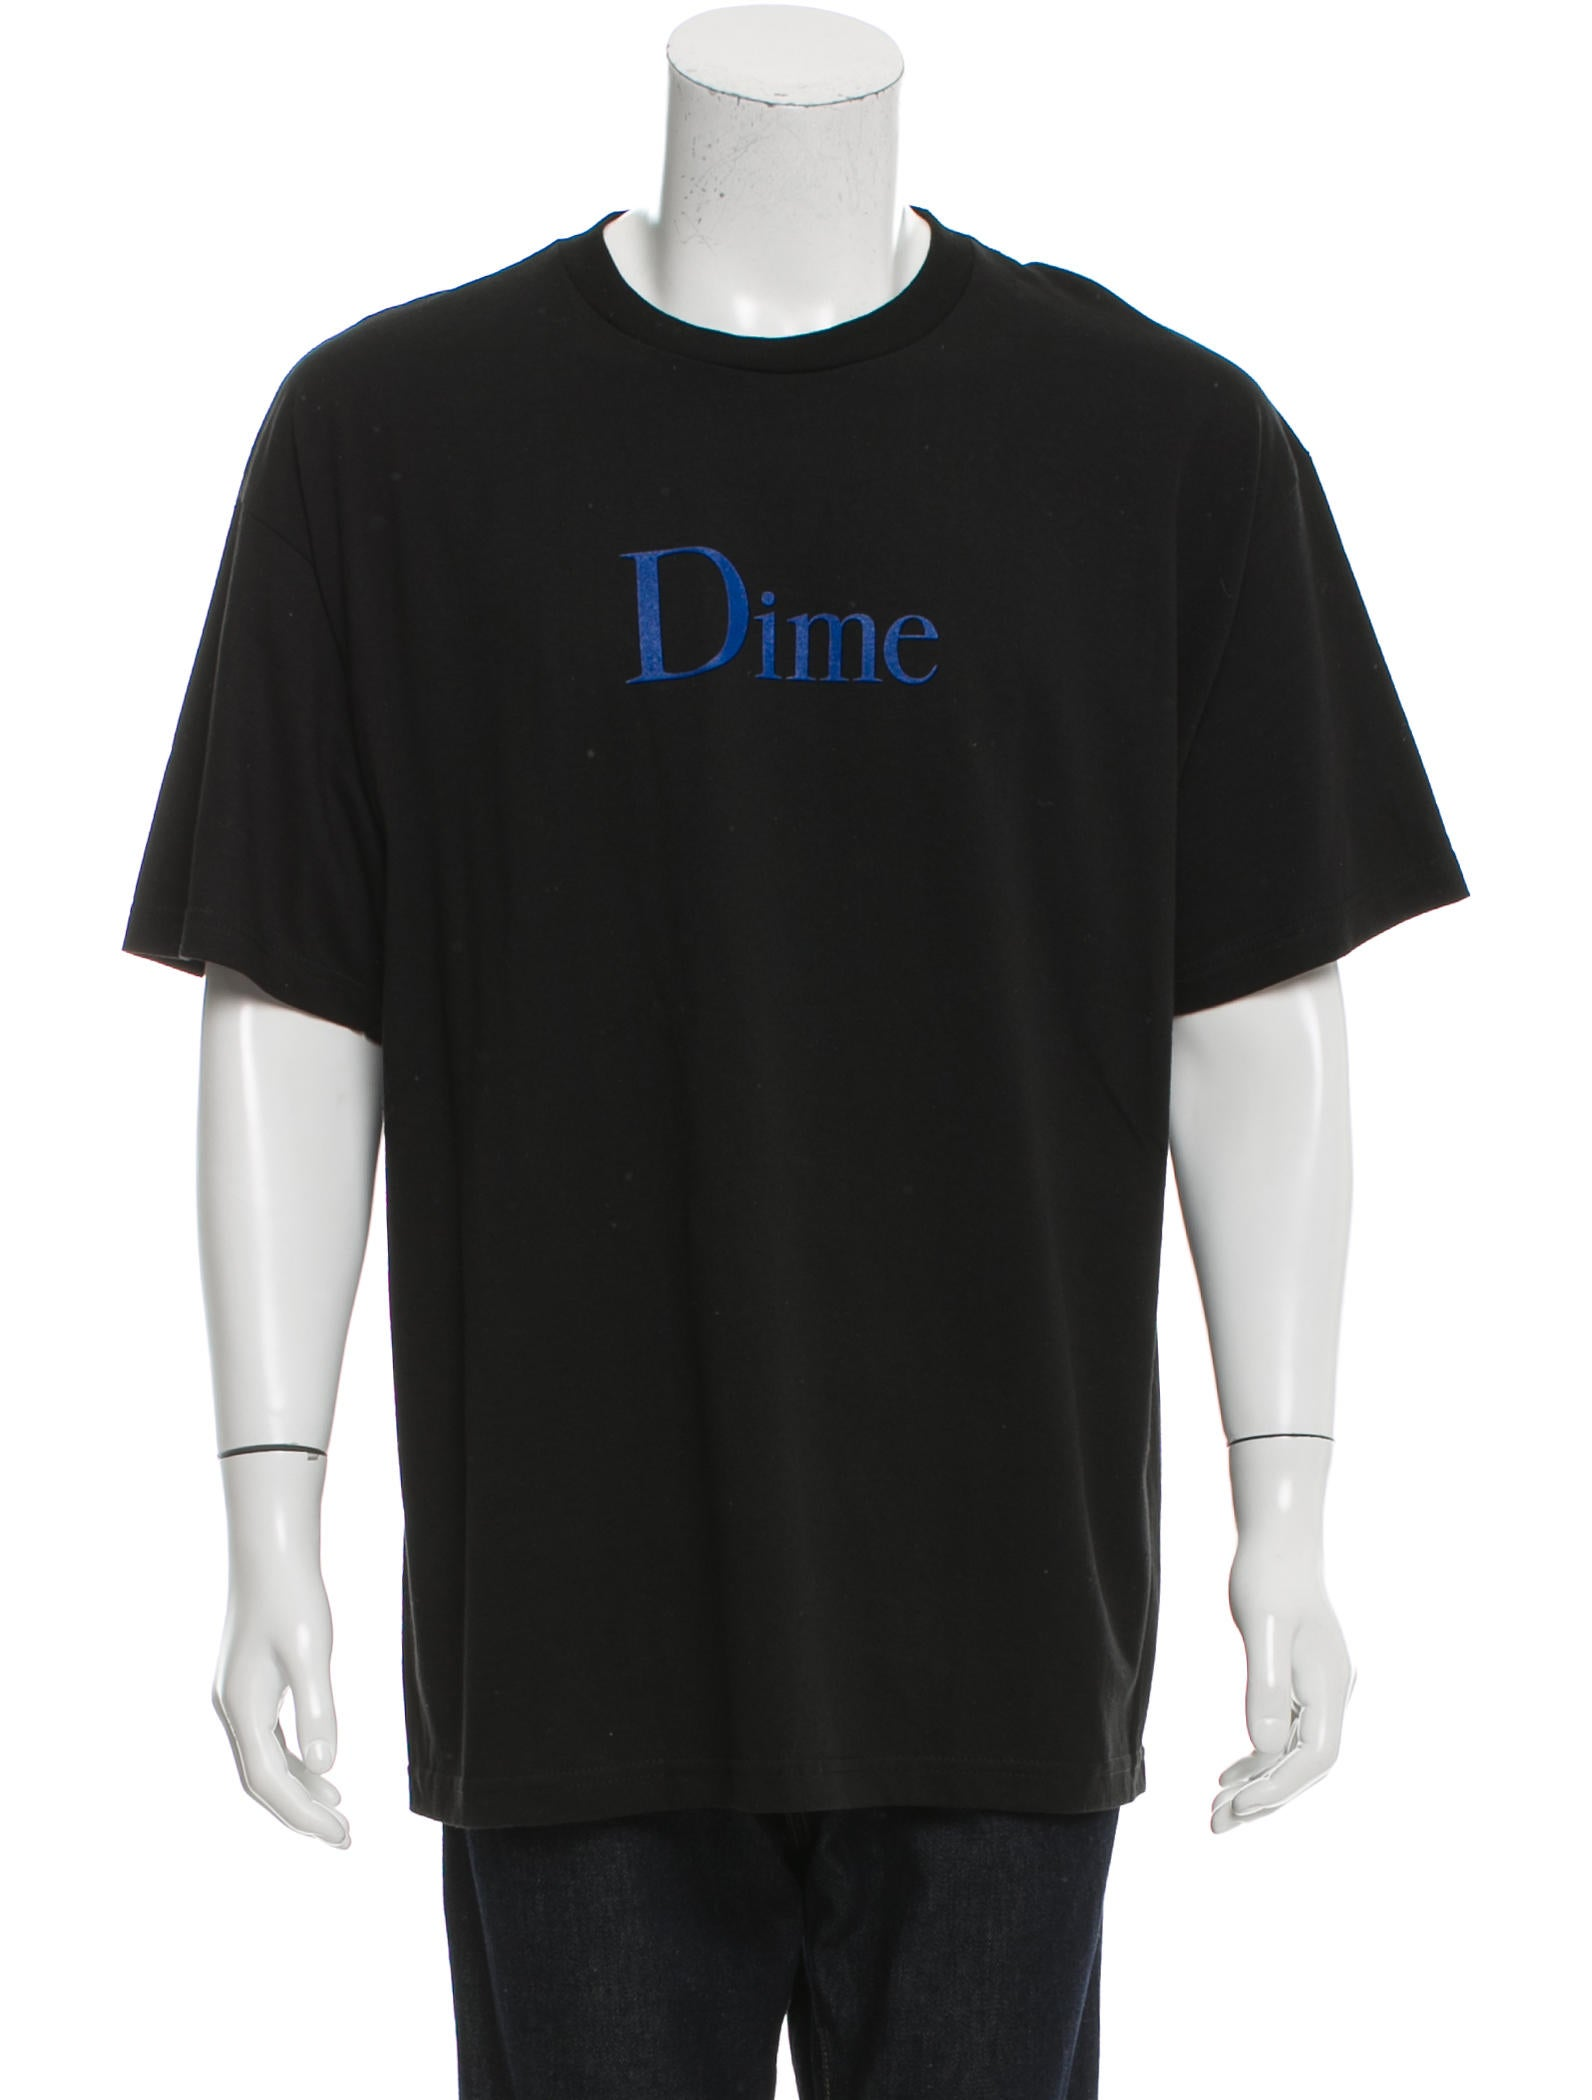 Dime Printed Logo T Shirt Clothing Wddme20010 The